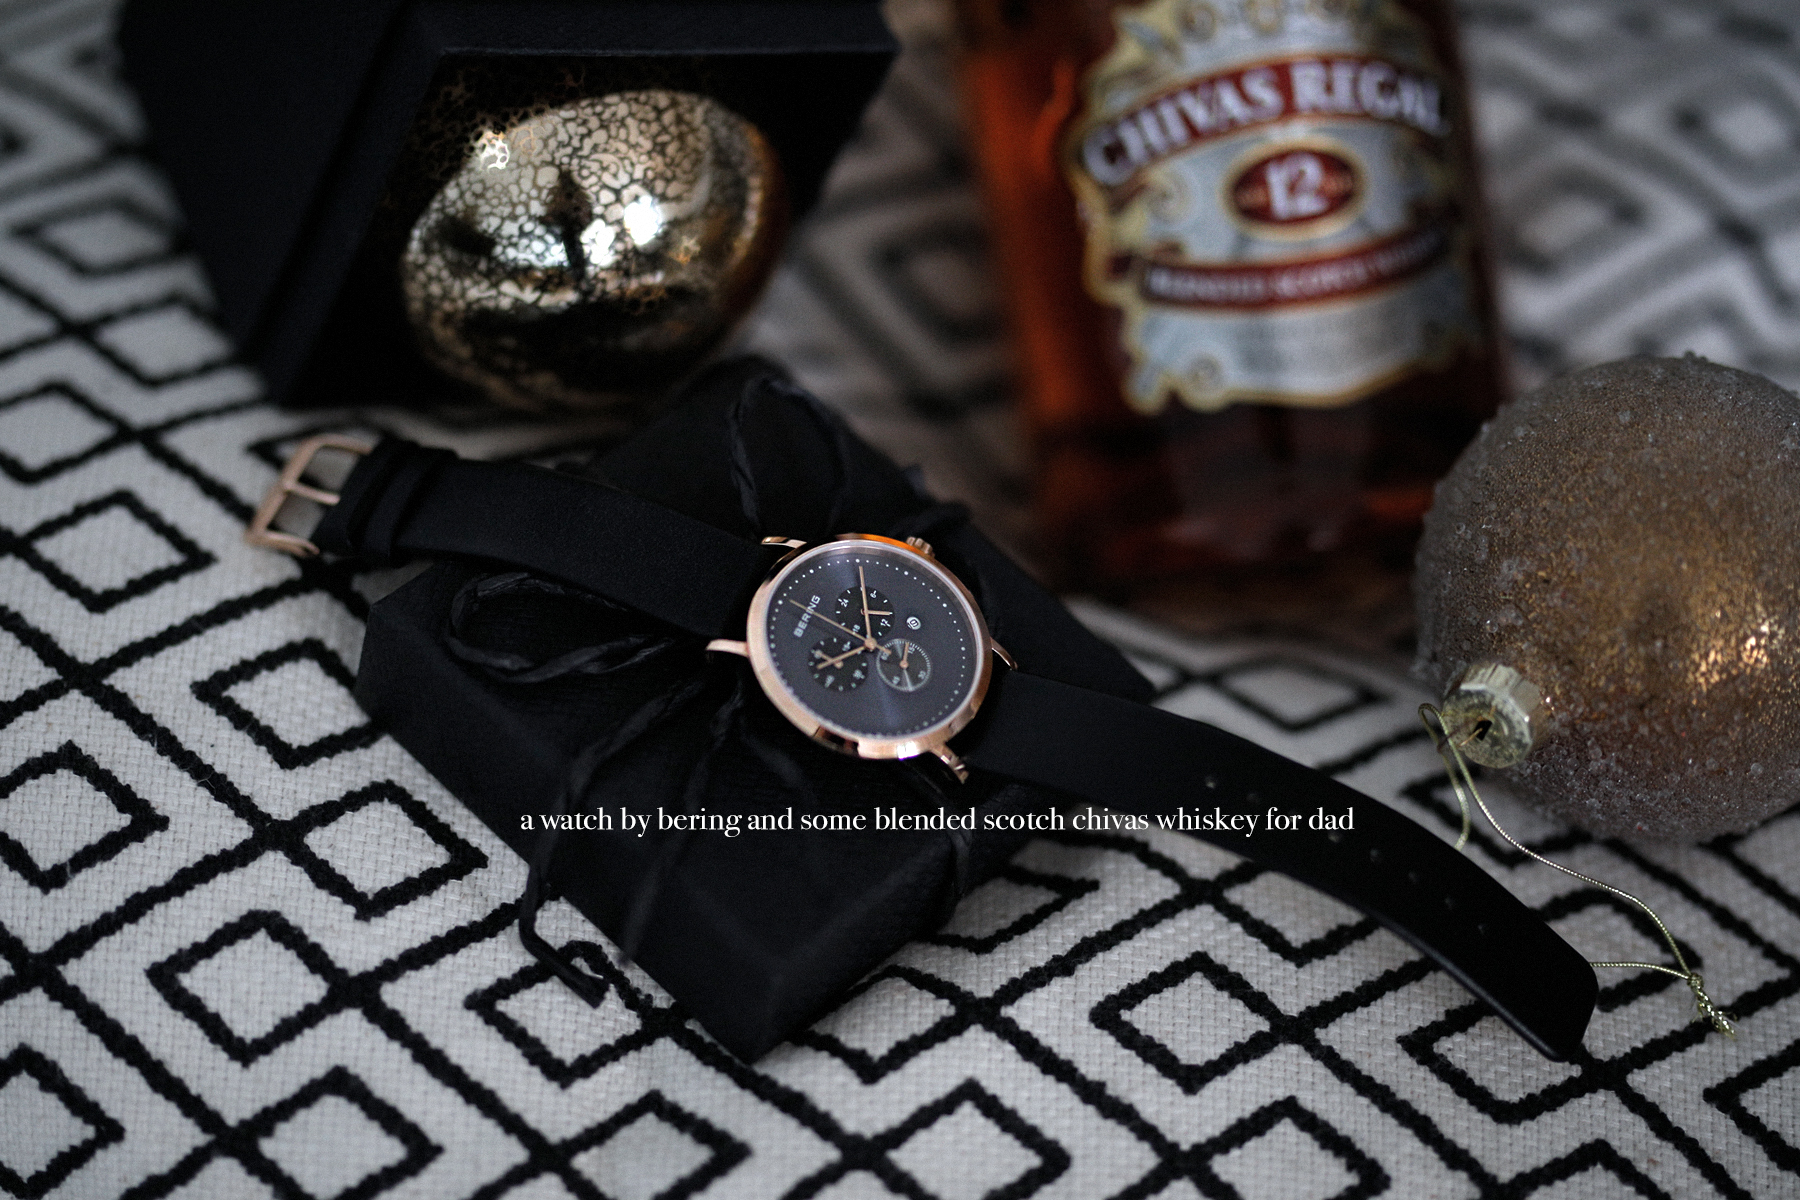 last minute gift guide monkey 47 gin thomas sabo jewelry melvita chivas regal 12 years whiskey bering uhren watches geschenke weihnachten christmas catsanddogsblog ricarda schernus max bechmann düsseldorf 6